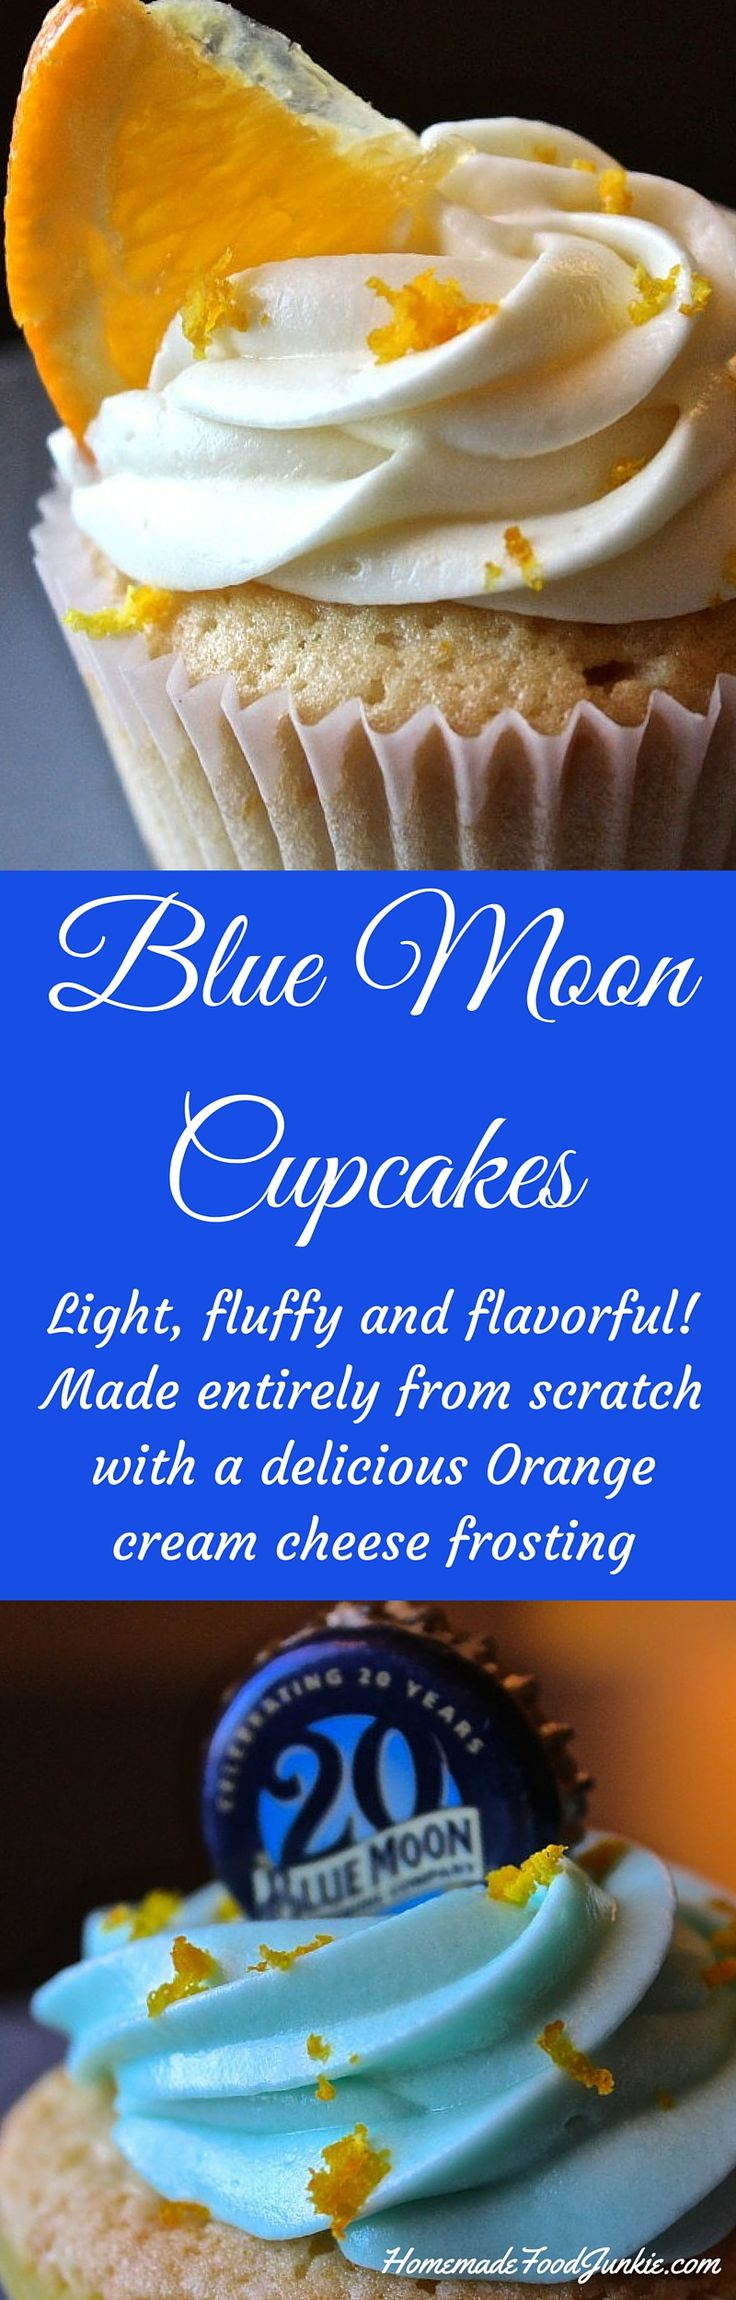 Blue Moon Cupcakes with Orange Cream Cheese Frosting http://homemadefoodjunkie.com